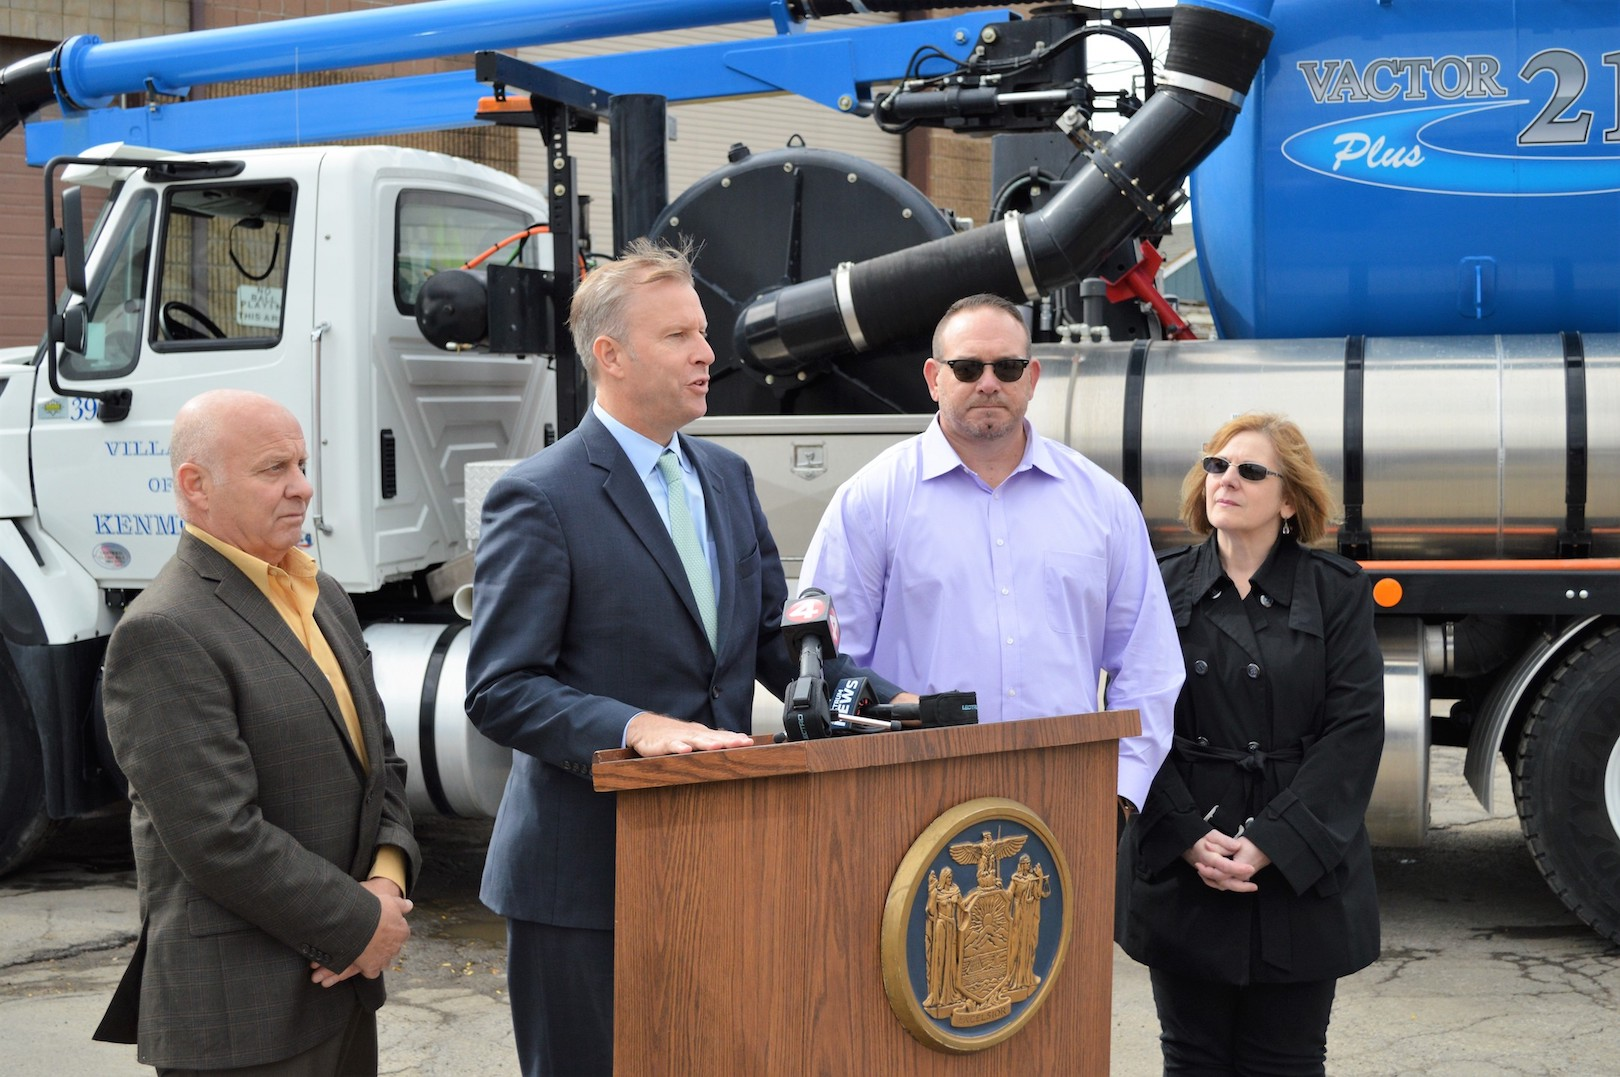 Pictured announcing $300,000 that New York State Sen. Chris Jacobs secured to support improvements to the Village of Kenmore's sewer system, from left, Mayor Patrick Mang, Jacobs, Superintendent of Public Works David Root and Clerk-Treasurer Kathleen Johnson.